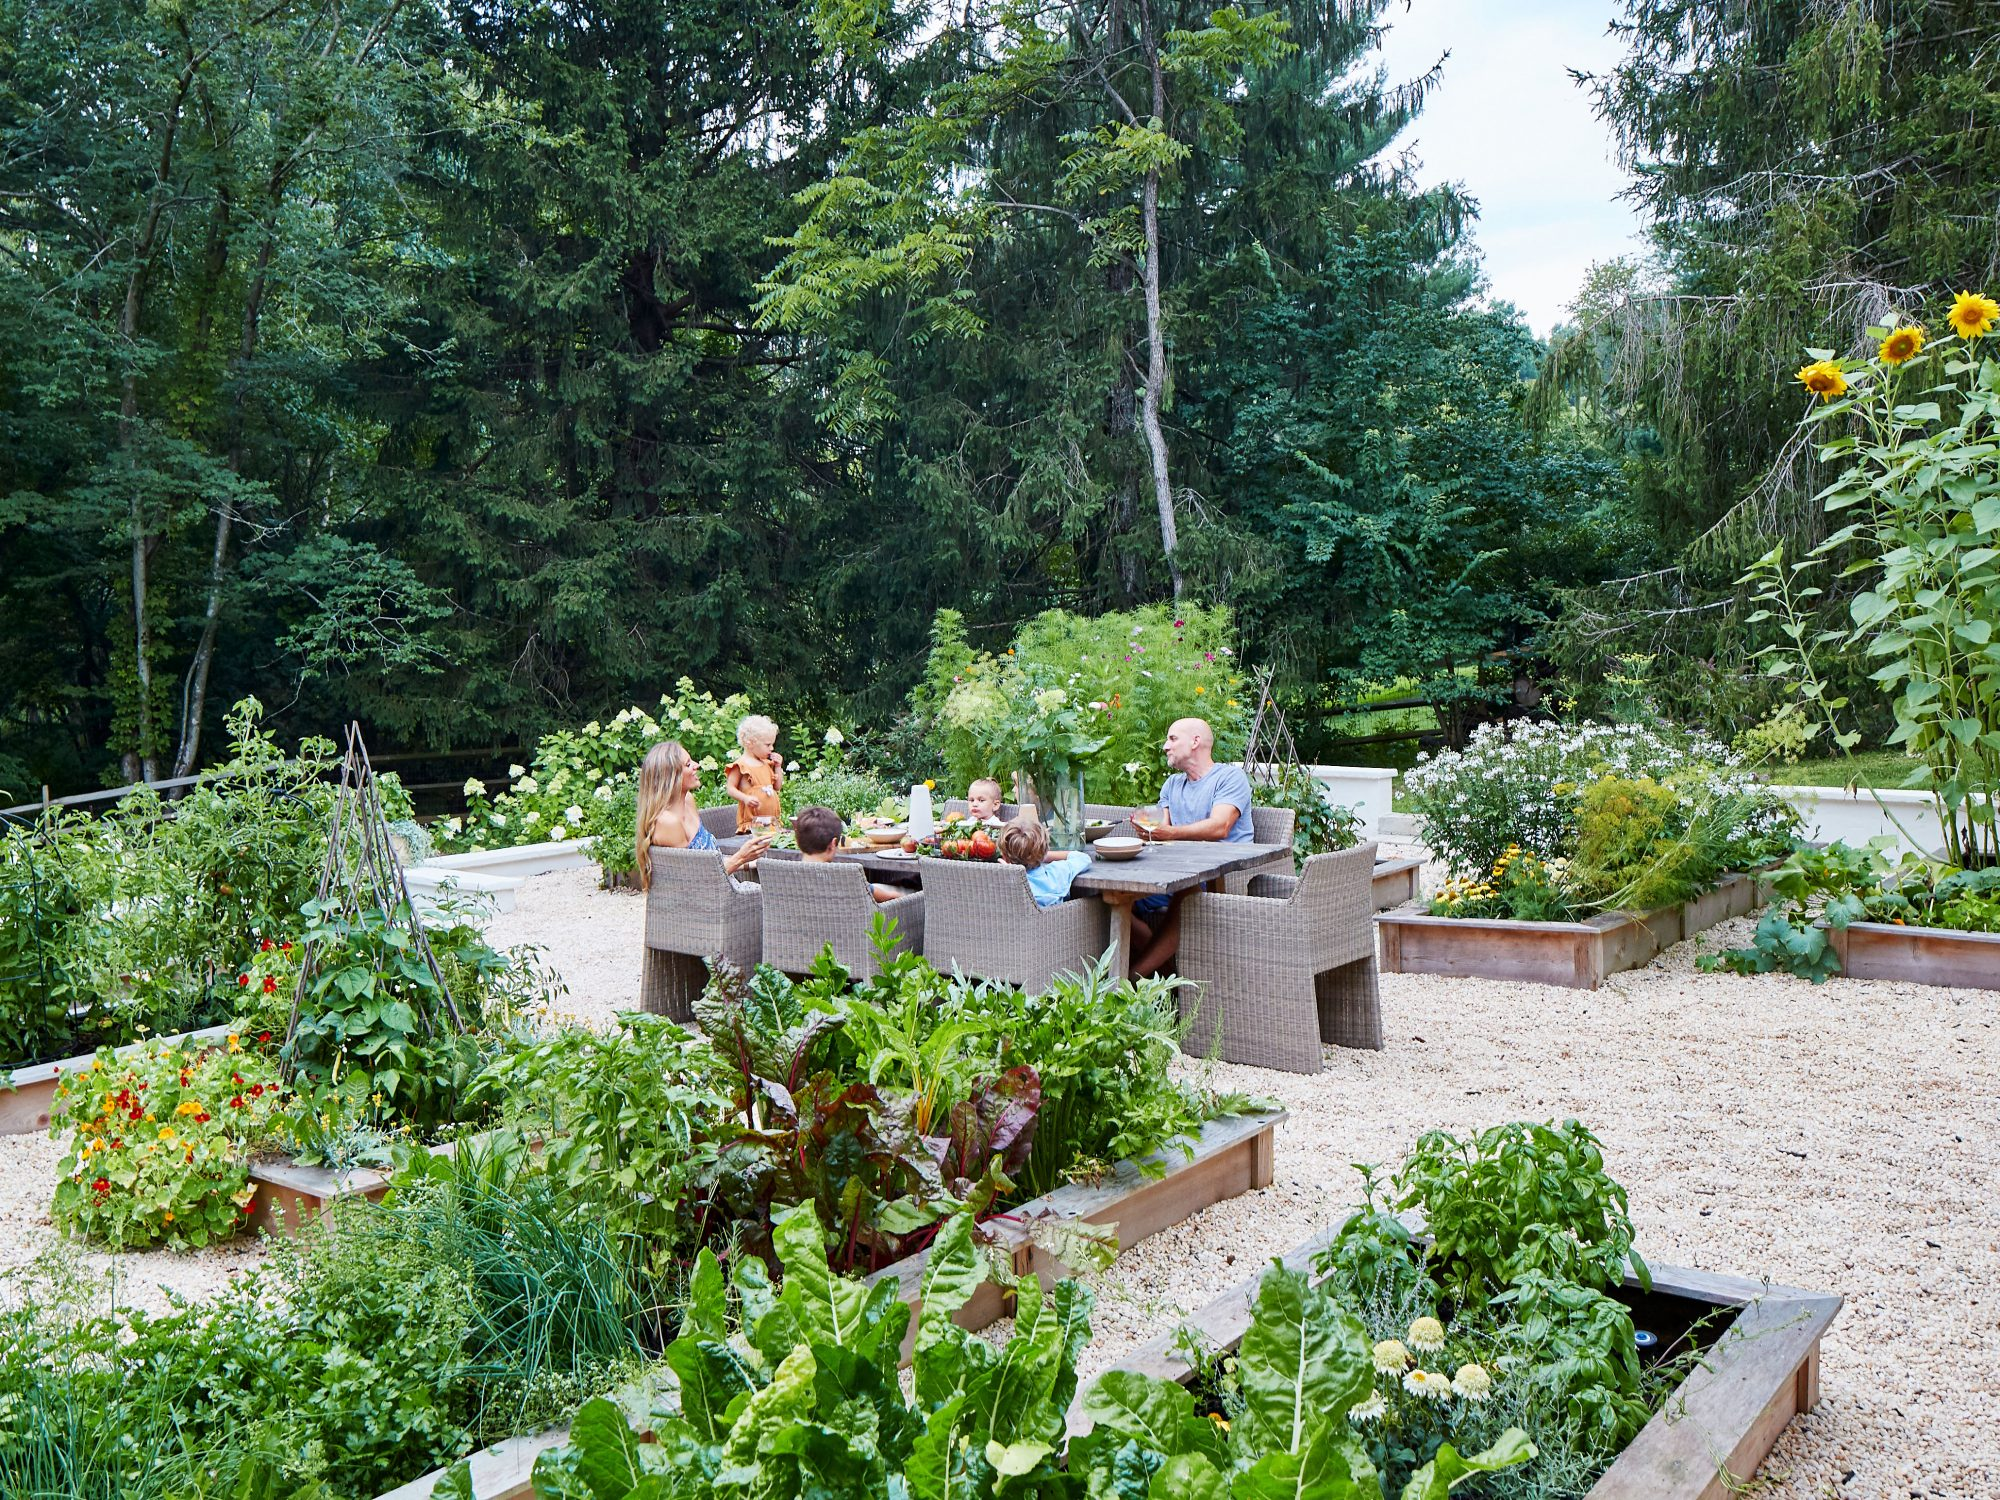 Lauren Liess and Family Eating Dinner at Table in Vegetable Garden